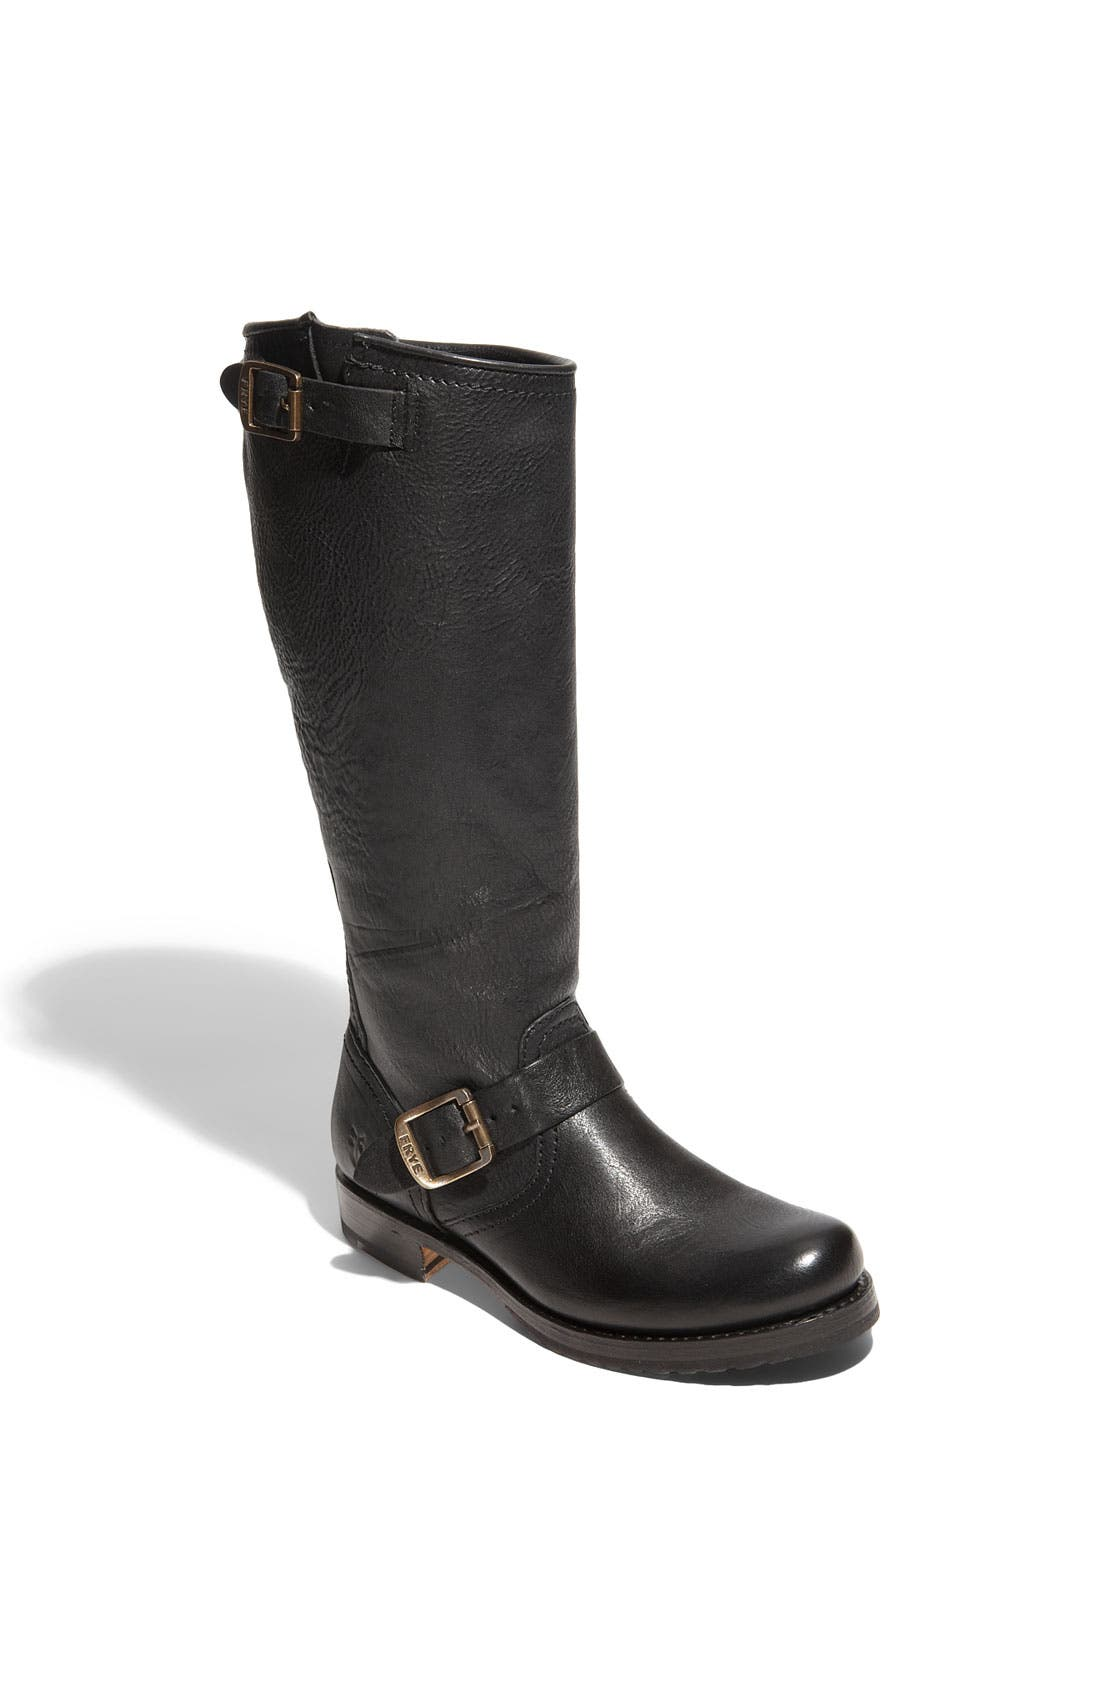 Main Image - Frye 'Veronica Slouch' Boot (Women)